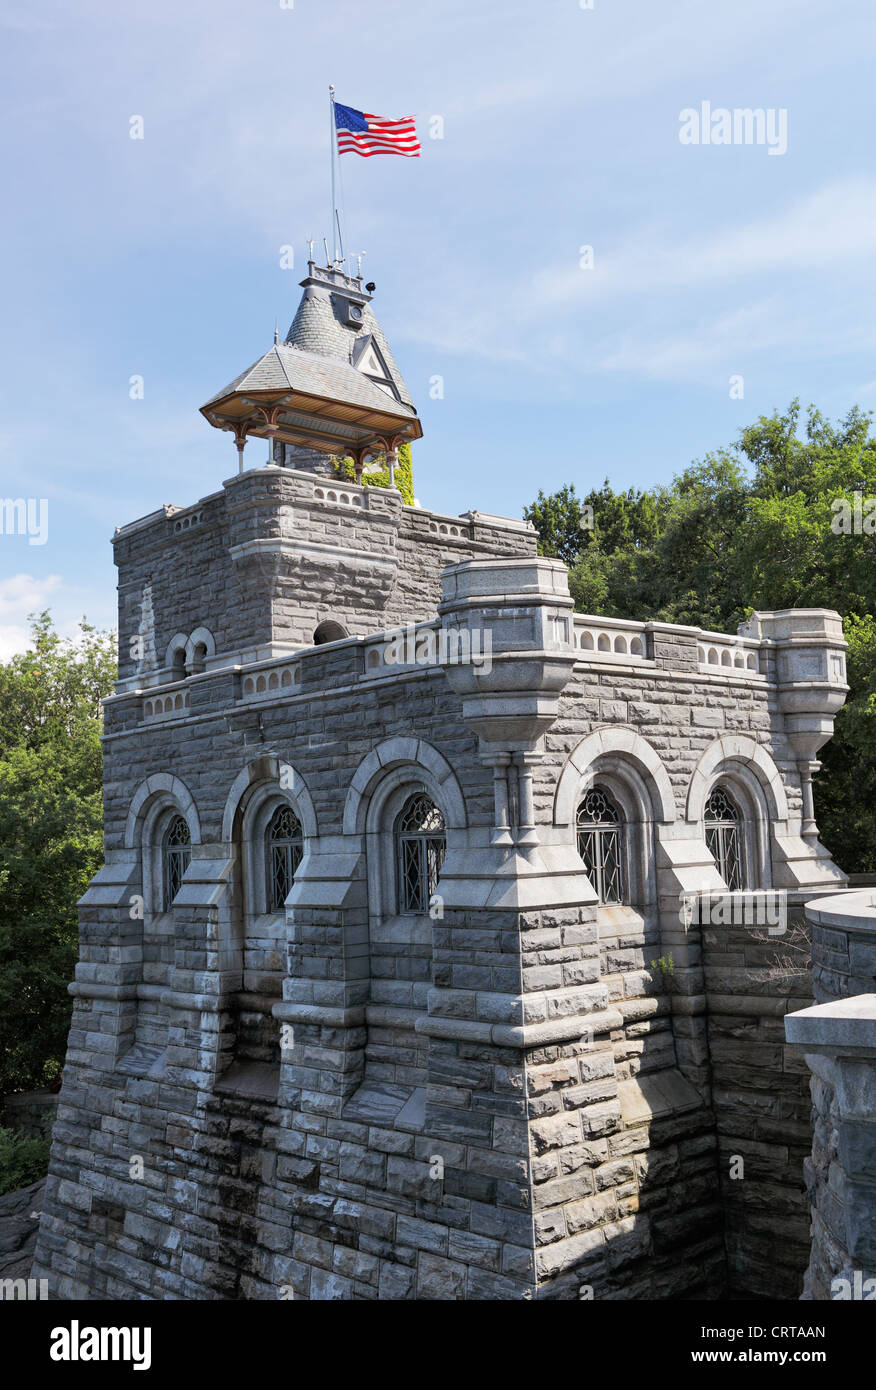 Belvedere Castle is a building in Central Park in New York City, New York, that contains exhibit rooms and an observation - Stock Image